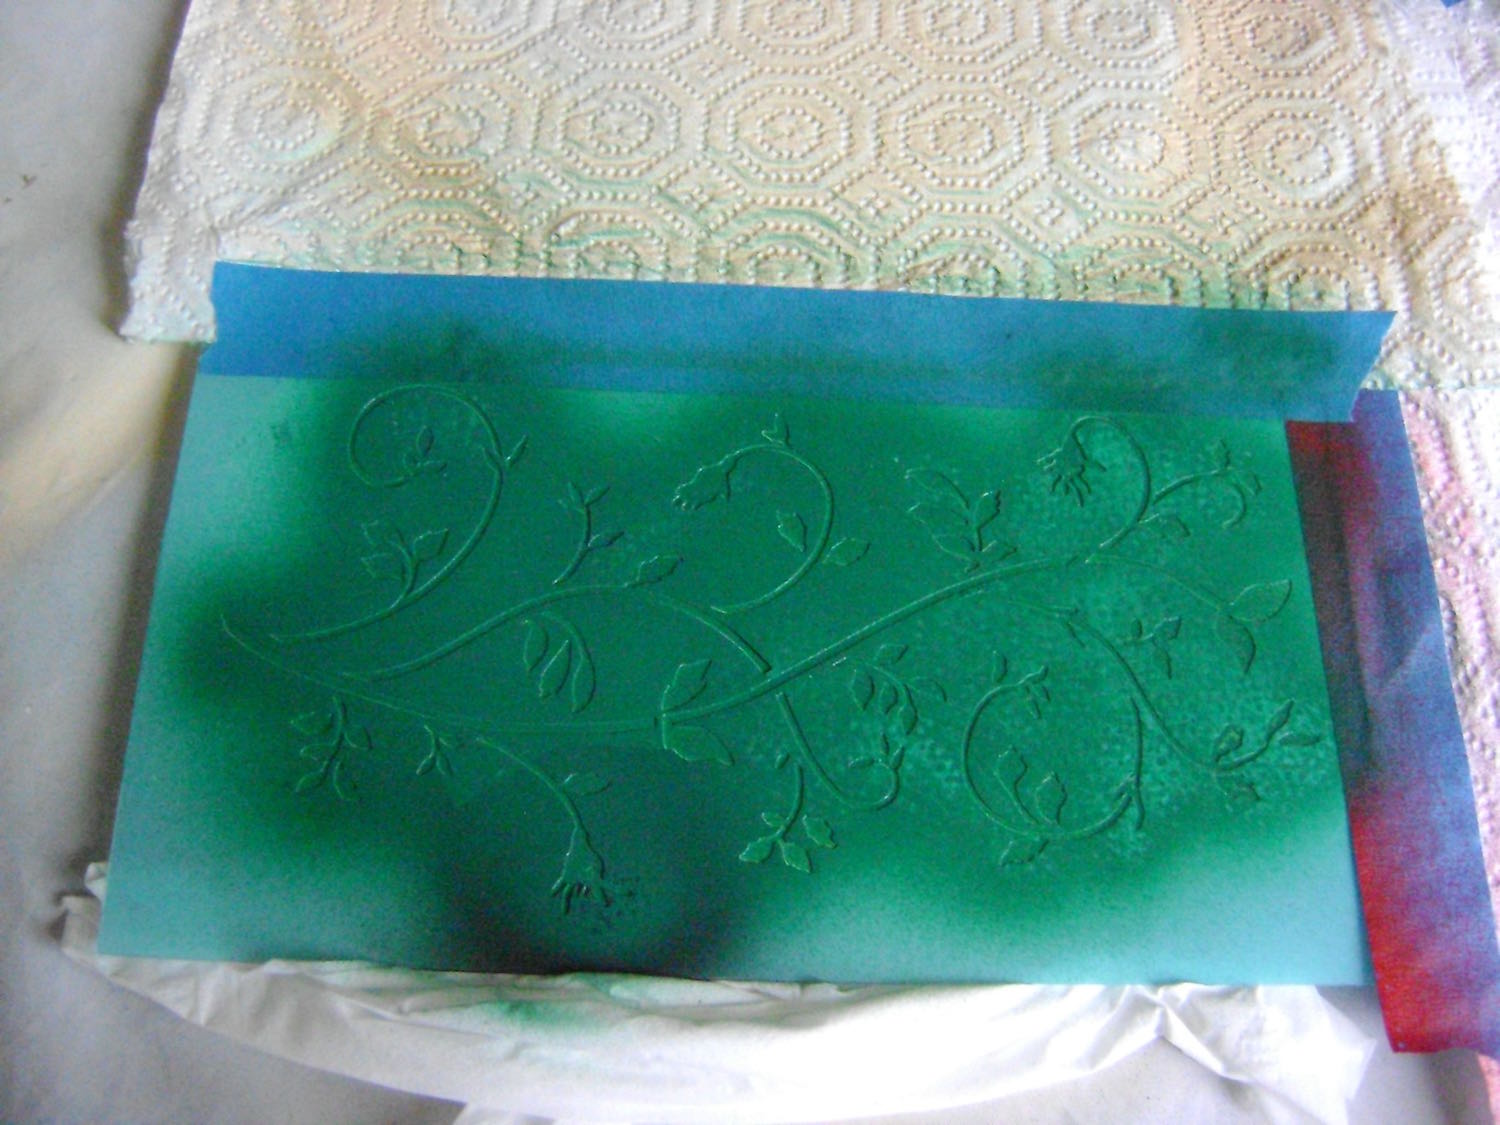 step 9 - Spray the back of the floral stencil with adhesive.  Place it across the painted plaque.  Airbrush it with green paint mixed with a bit of red to deepen the color.  Allow to dry then remove the stencil.